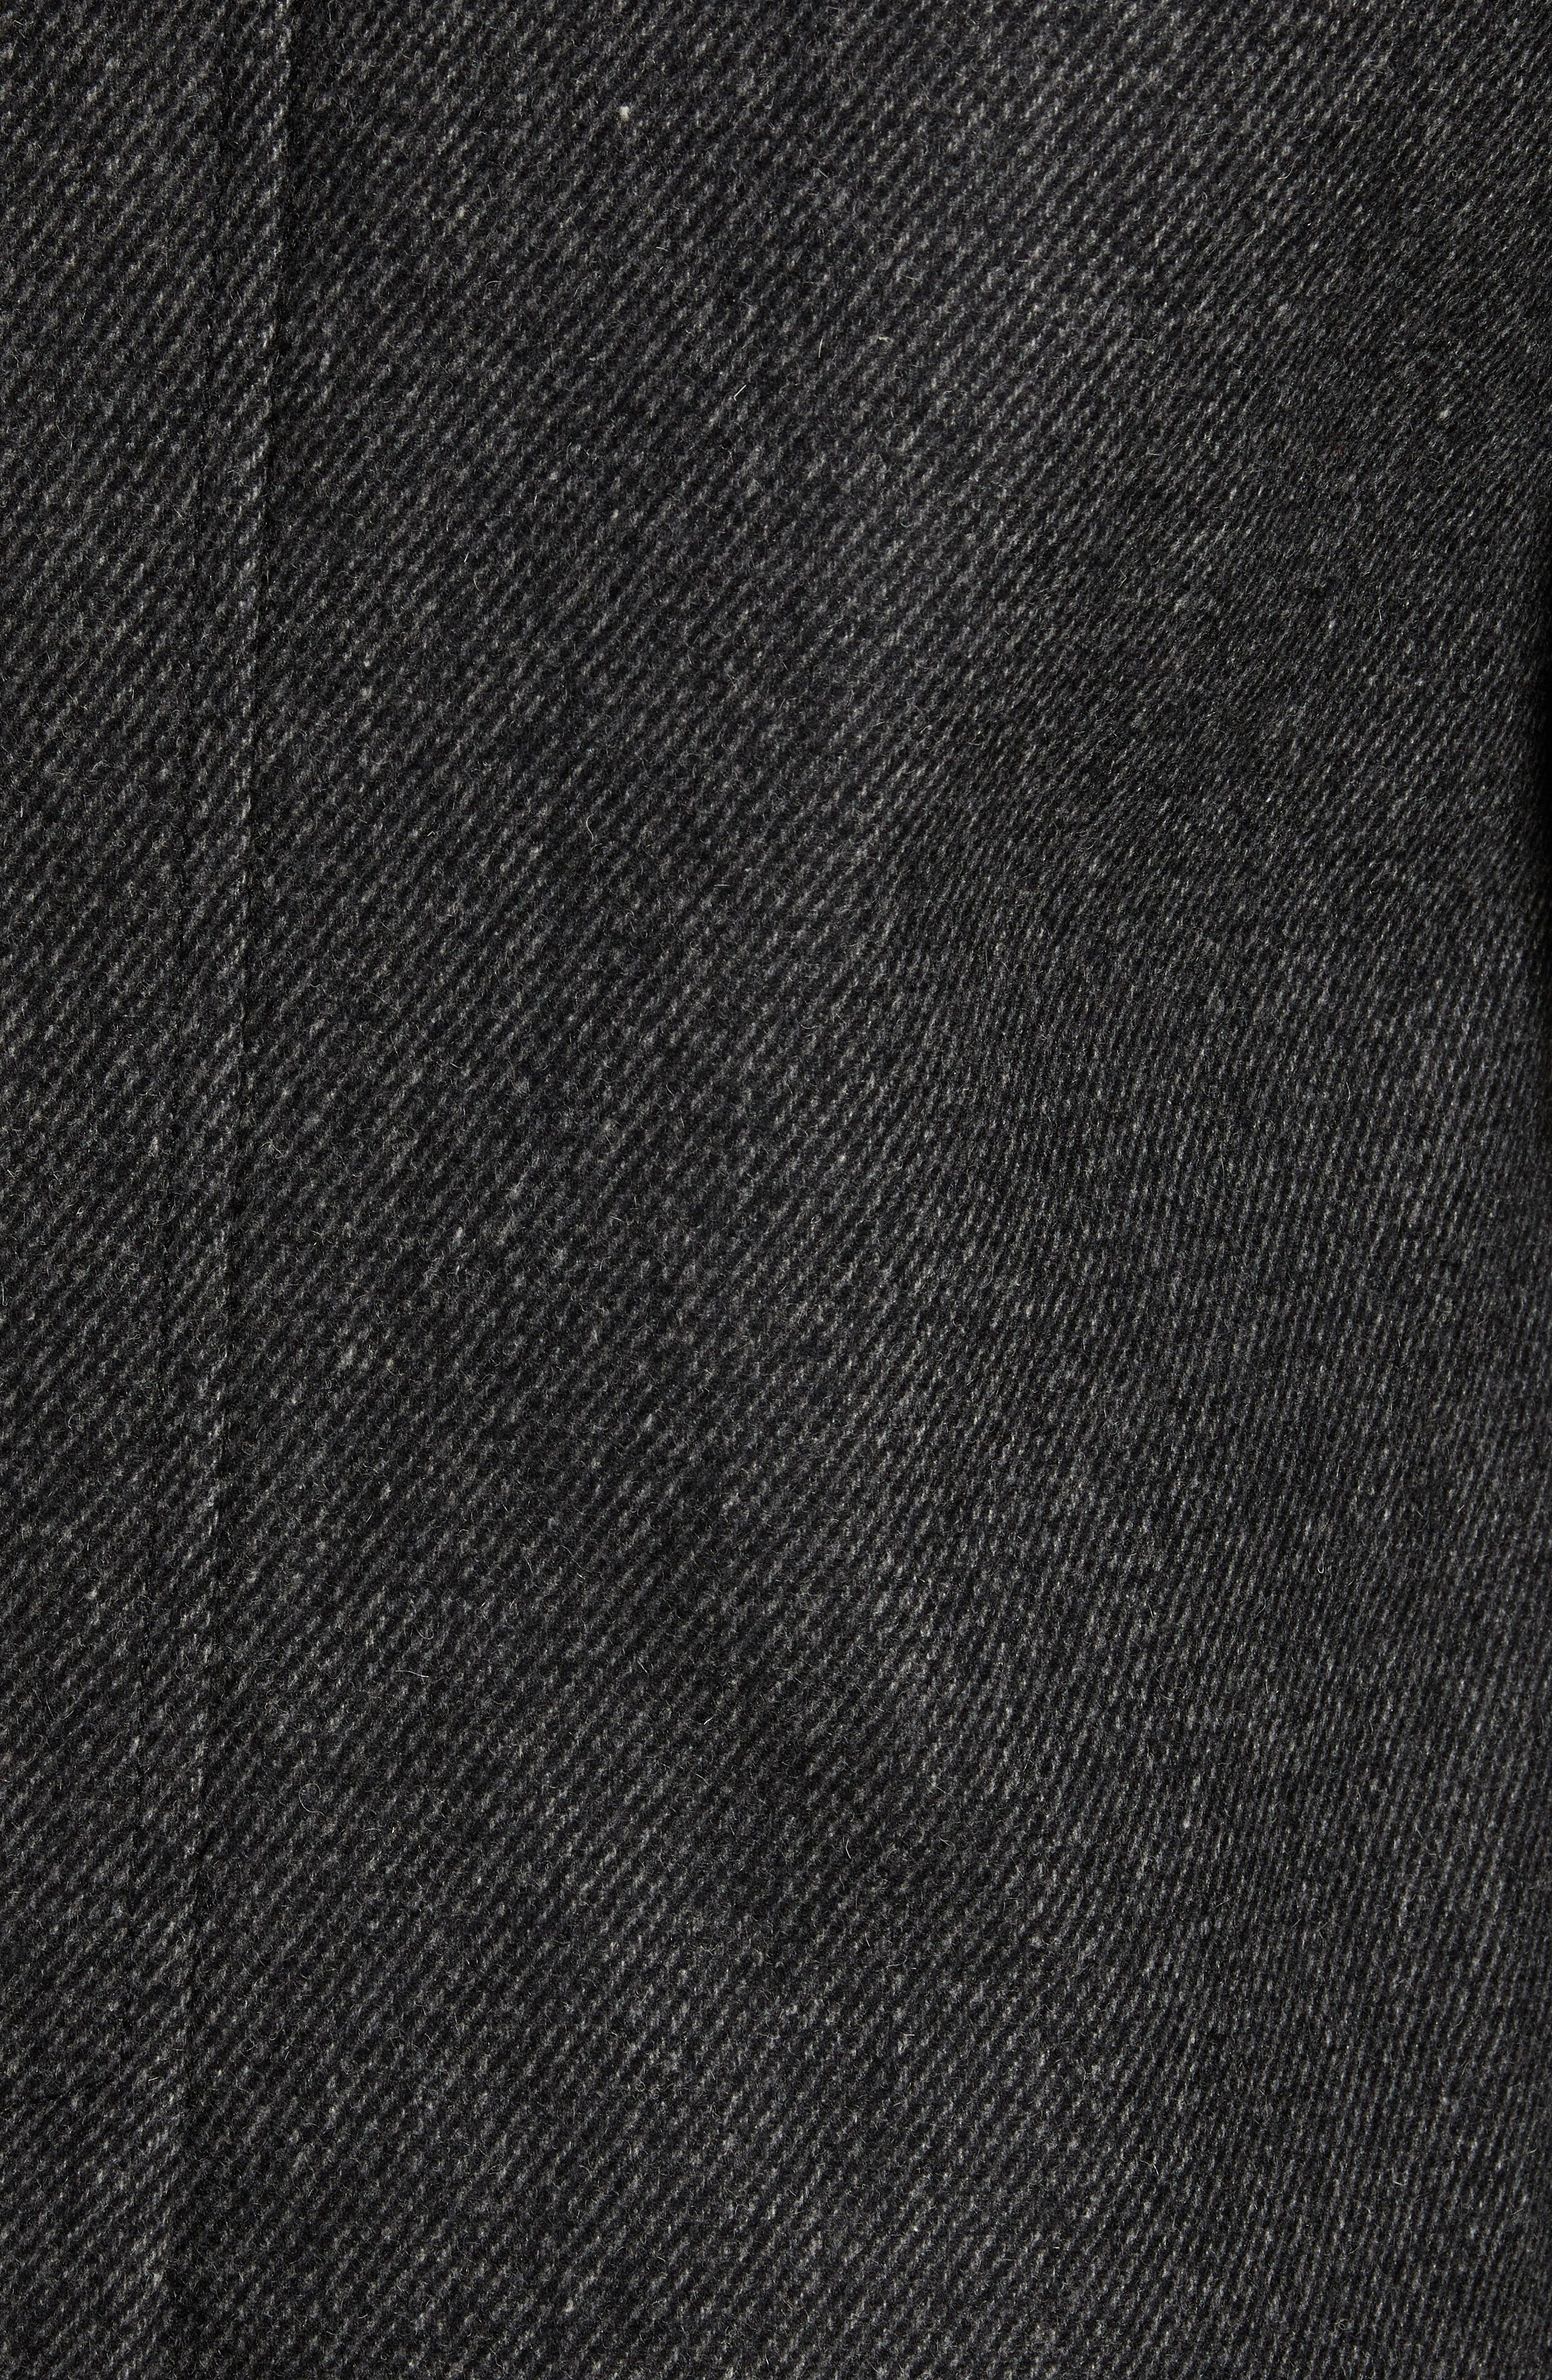 Grilled Wool Blend Peacoat,                             Alternate thumbnail 7, color,                             GREY